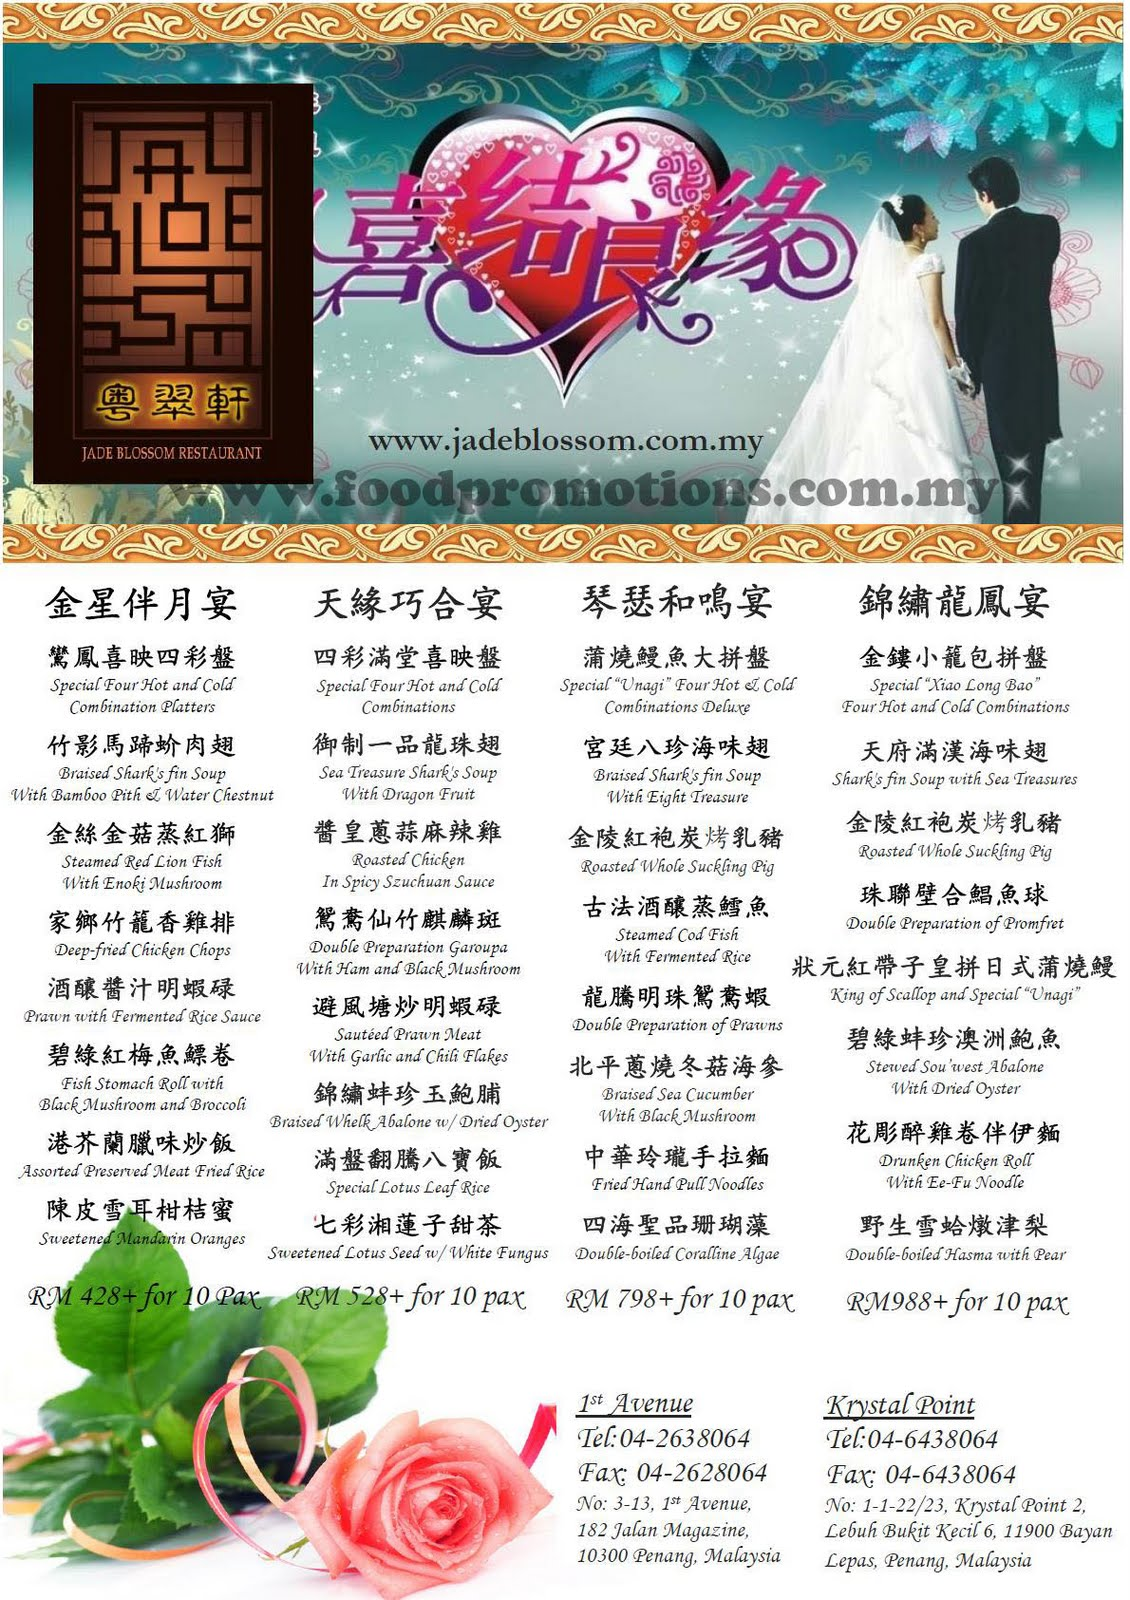 Jade Blossom Restaurant Wedding Package Menu